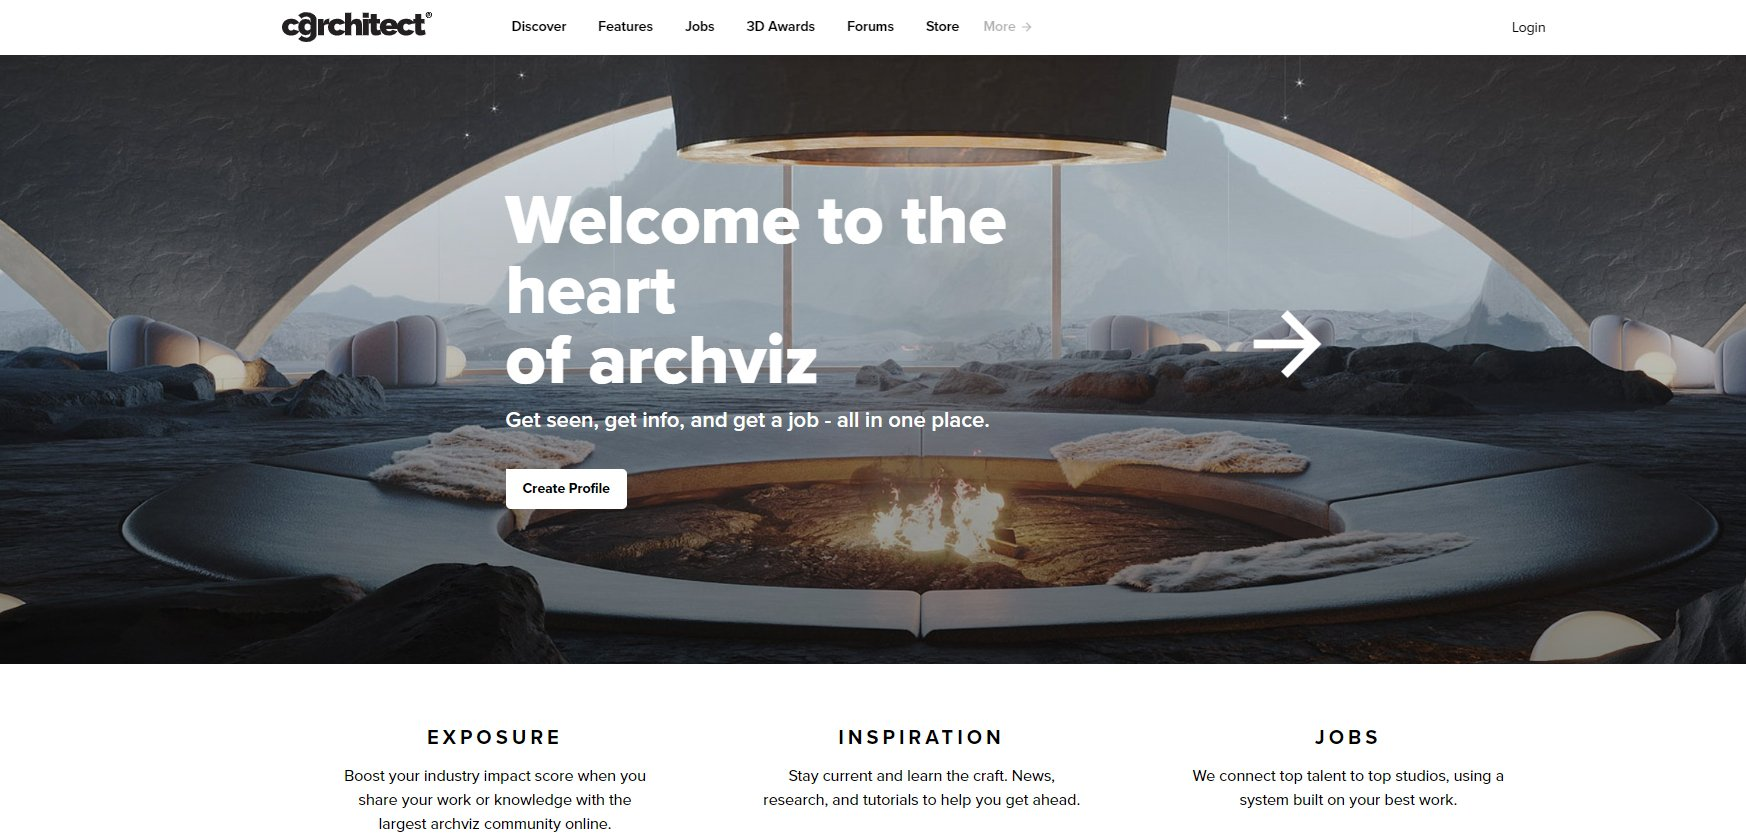 Looking for Inspiration on CGArchitect Platform